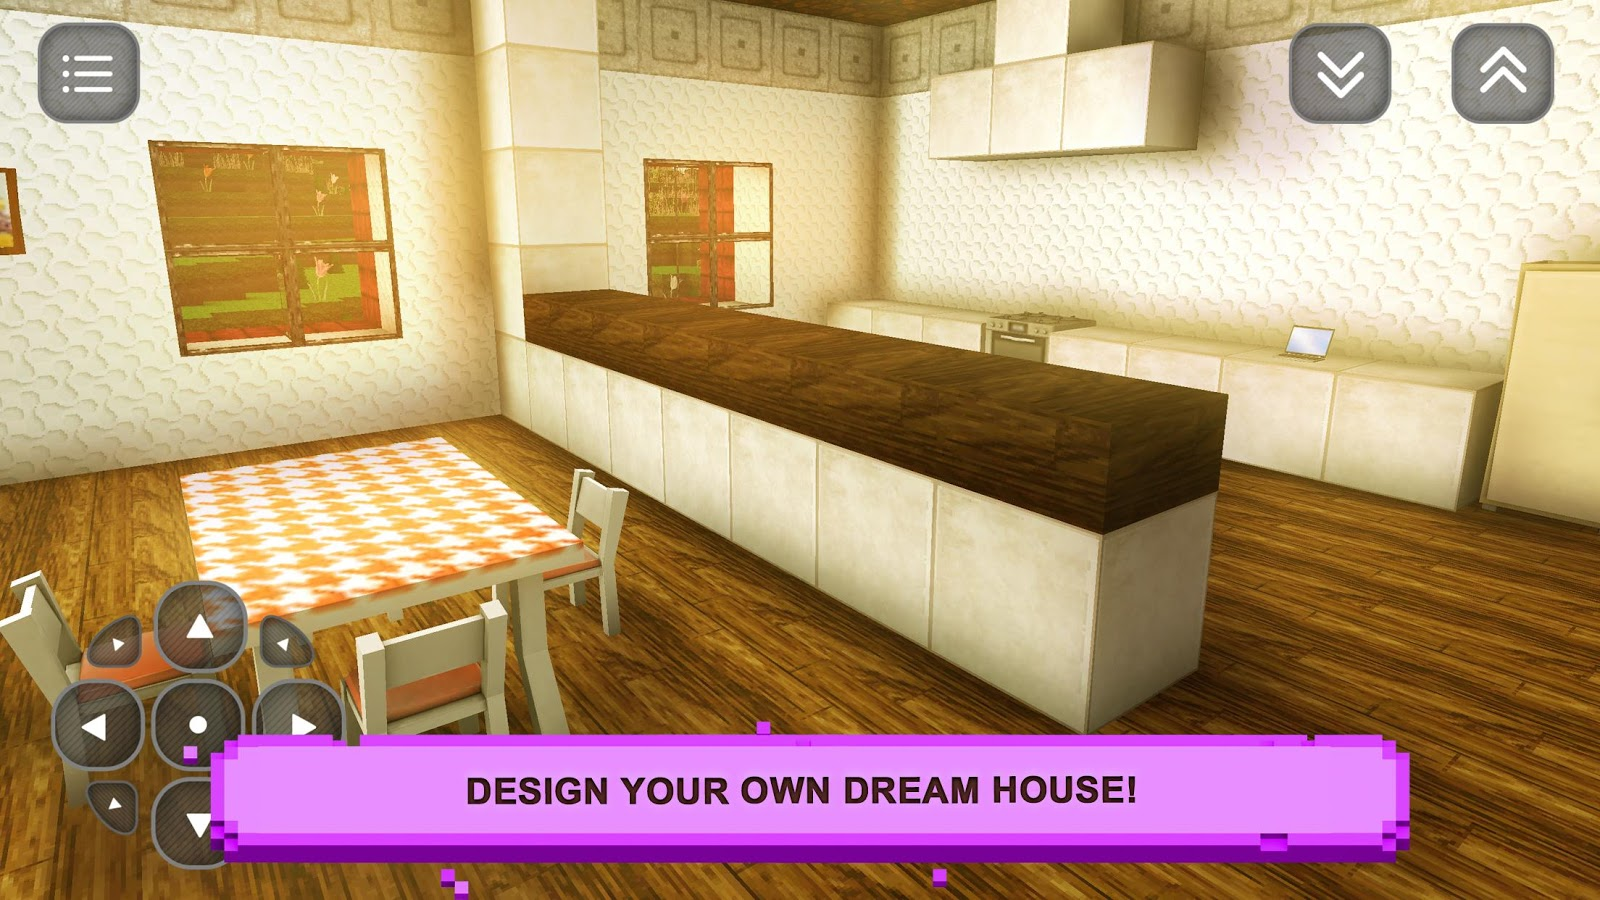 Interior design your house - Sim Girls Craft Home Design Screenshot